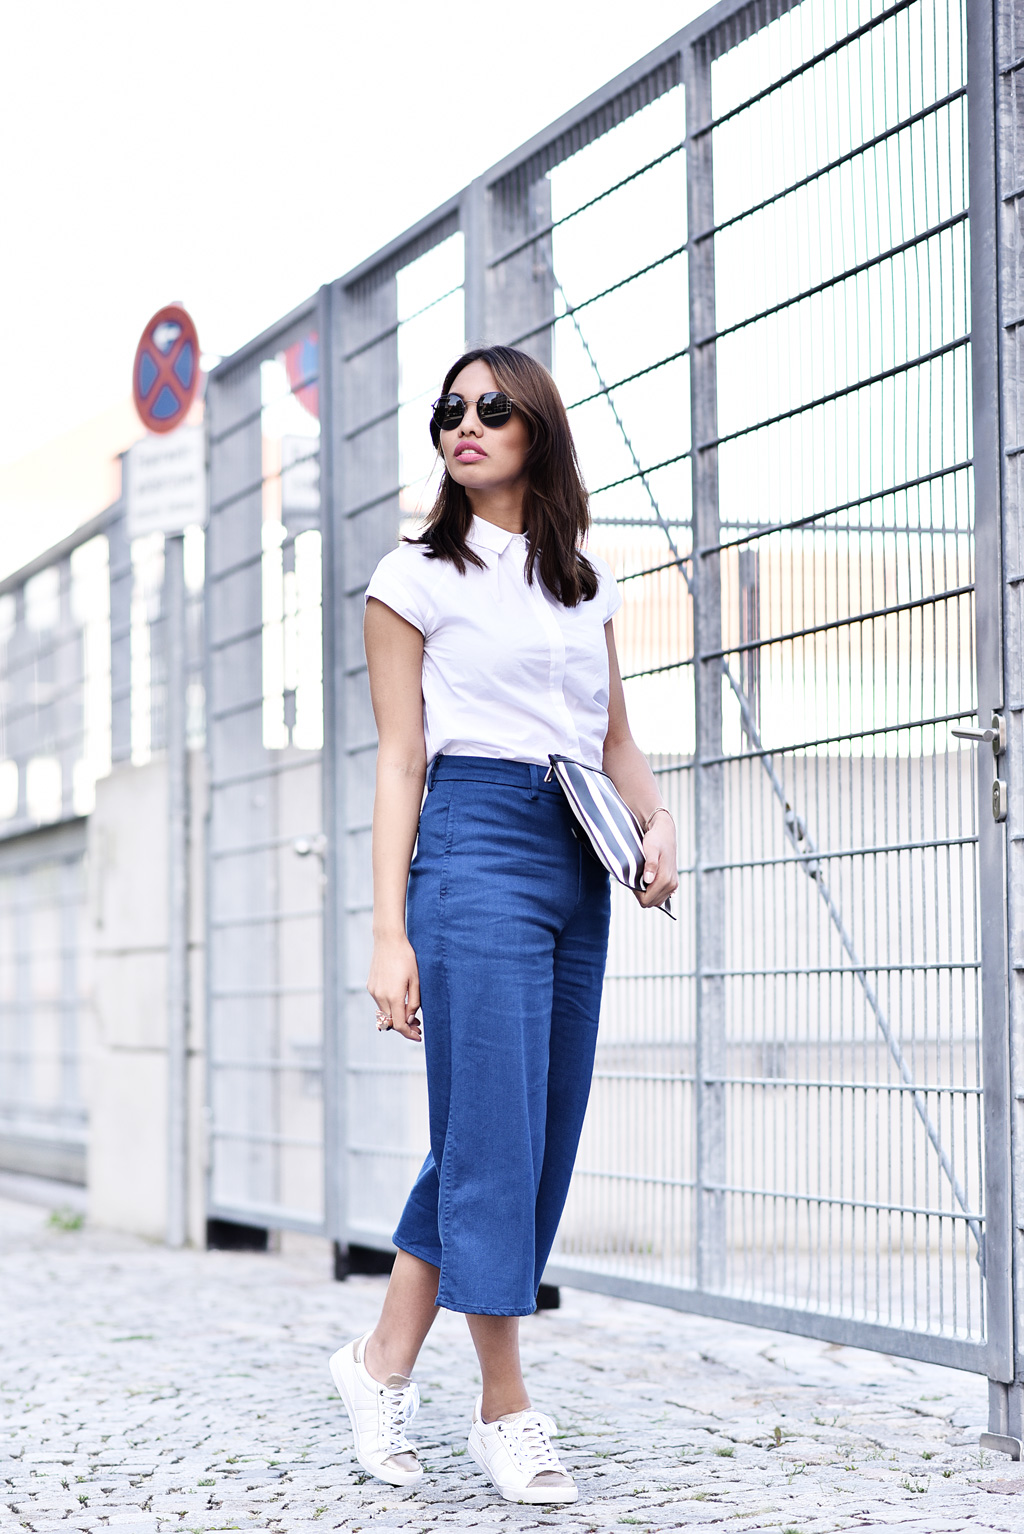 thefashionanarchy_modeblog_fashionblog_styleblog_blogger_culotte_denim_jeans_crop_top_bluse_weiss_outfit_look_gola_sneaker_1